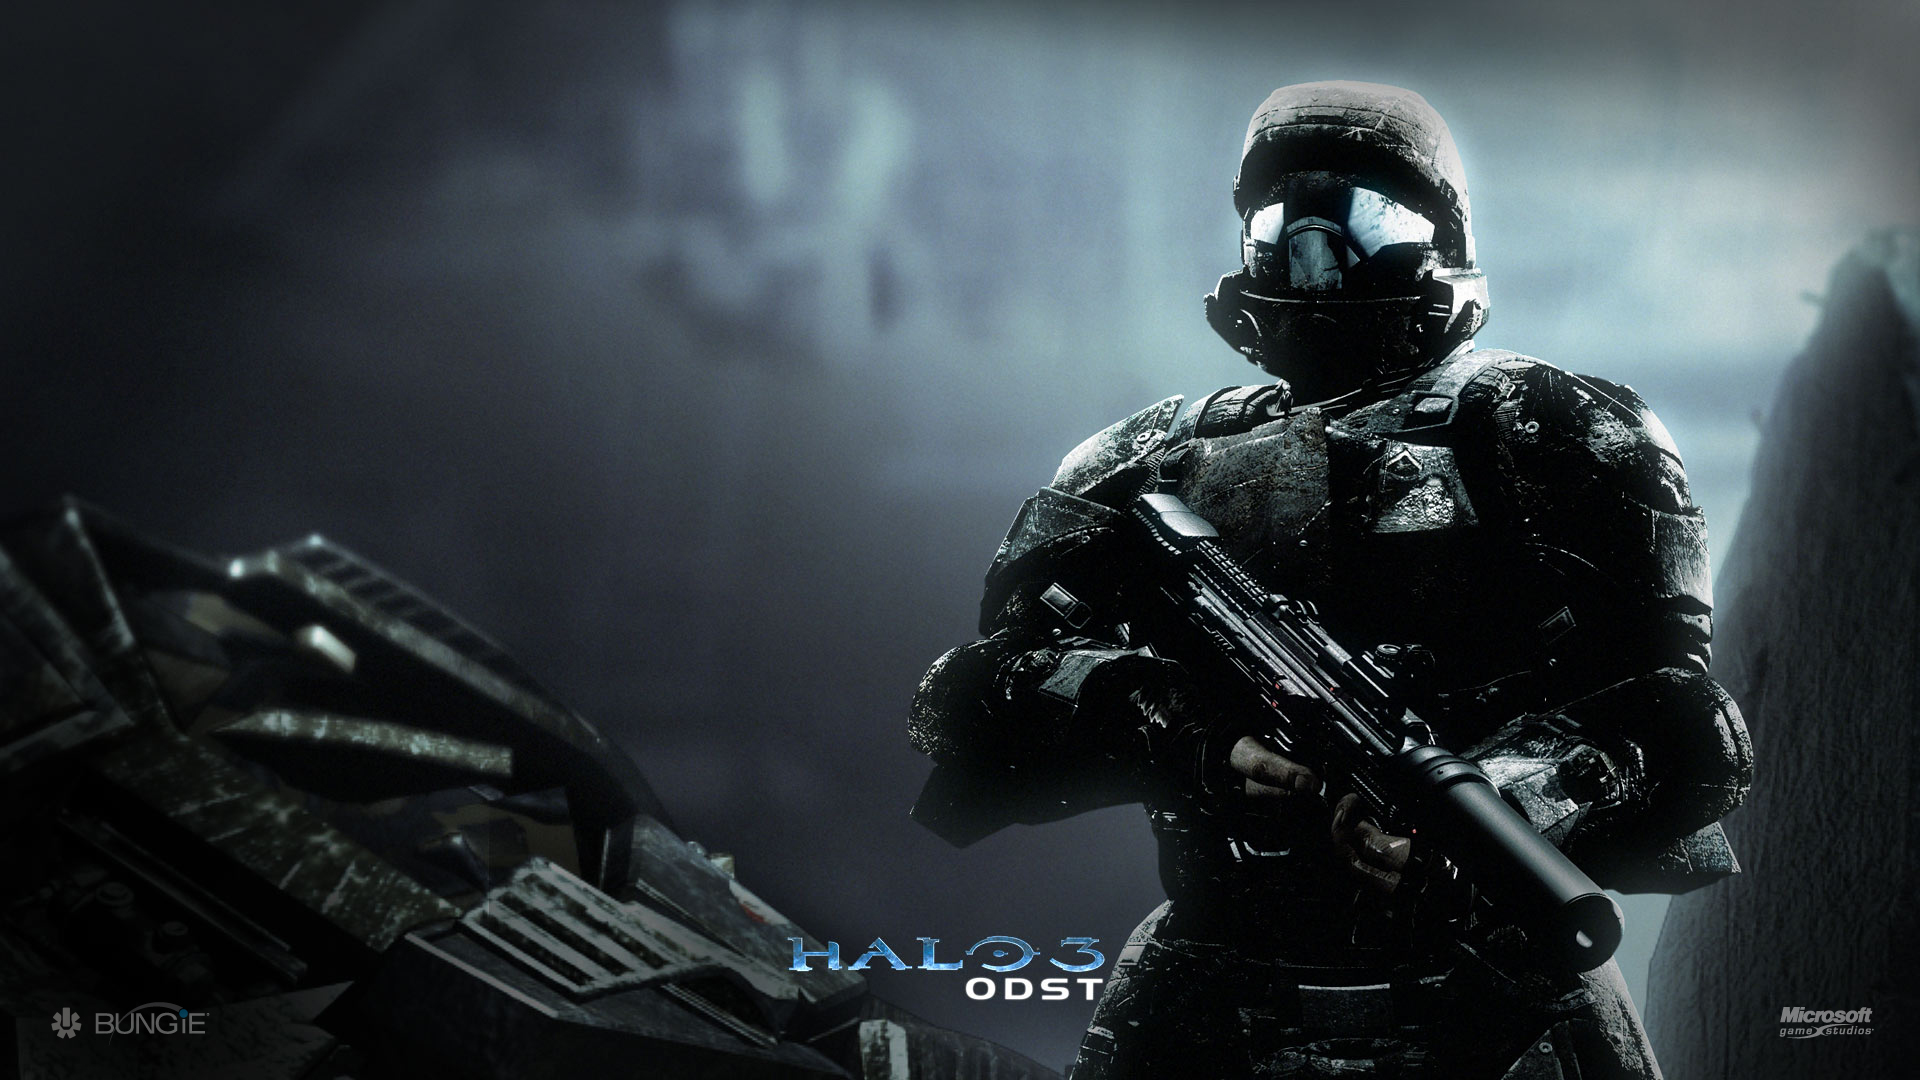 Halo 3 ODST wallpaper